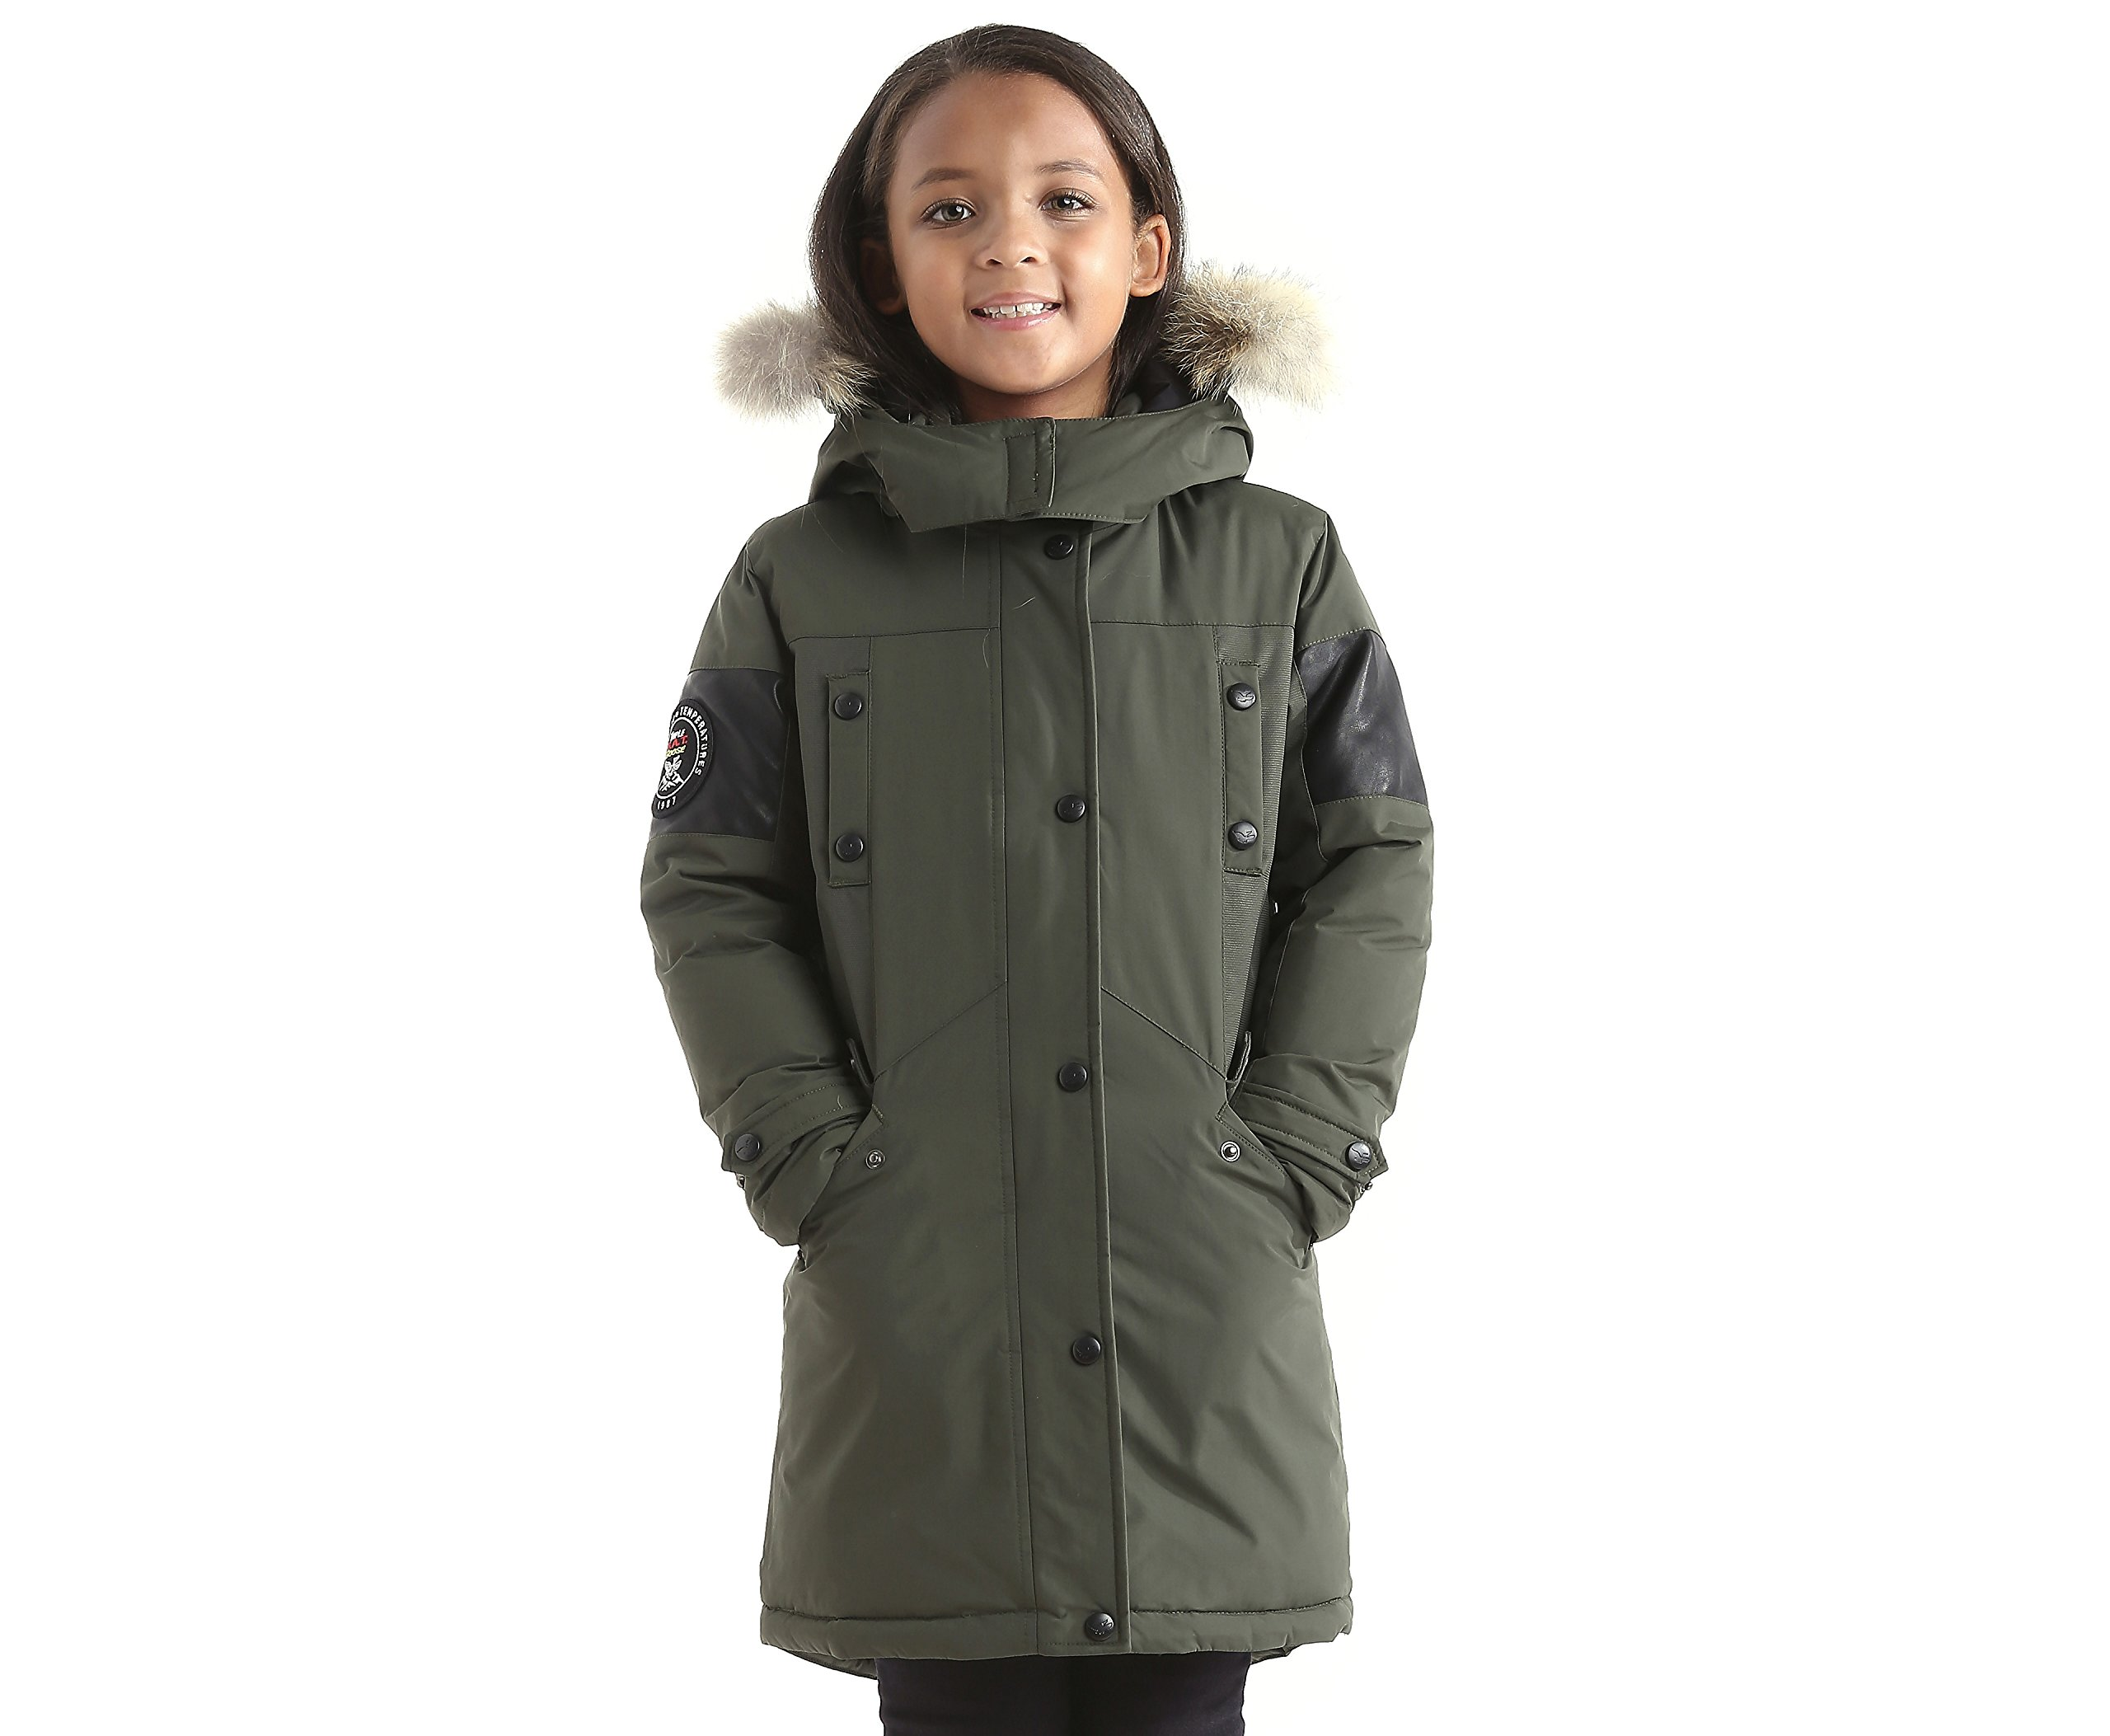 Triple F.A.T. Goose Embree Girls Down Jacket Parka with Real Coyote Fur (12, Olive)